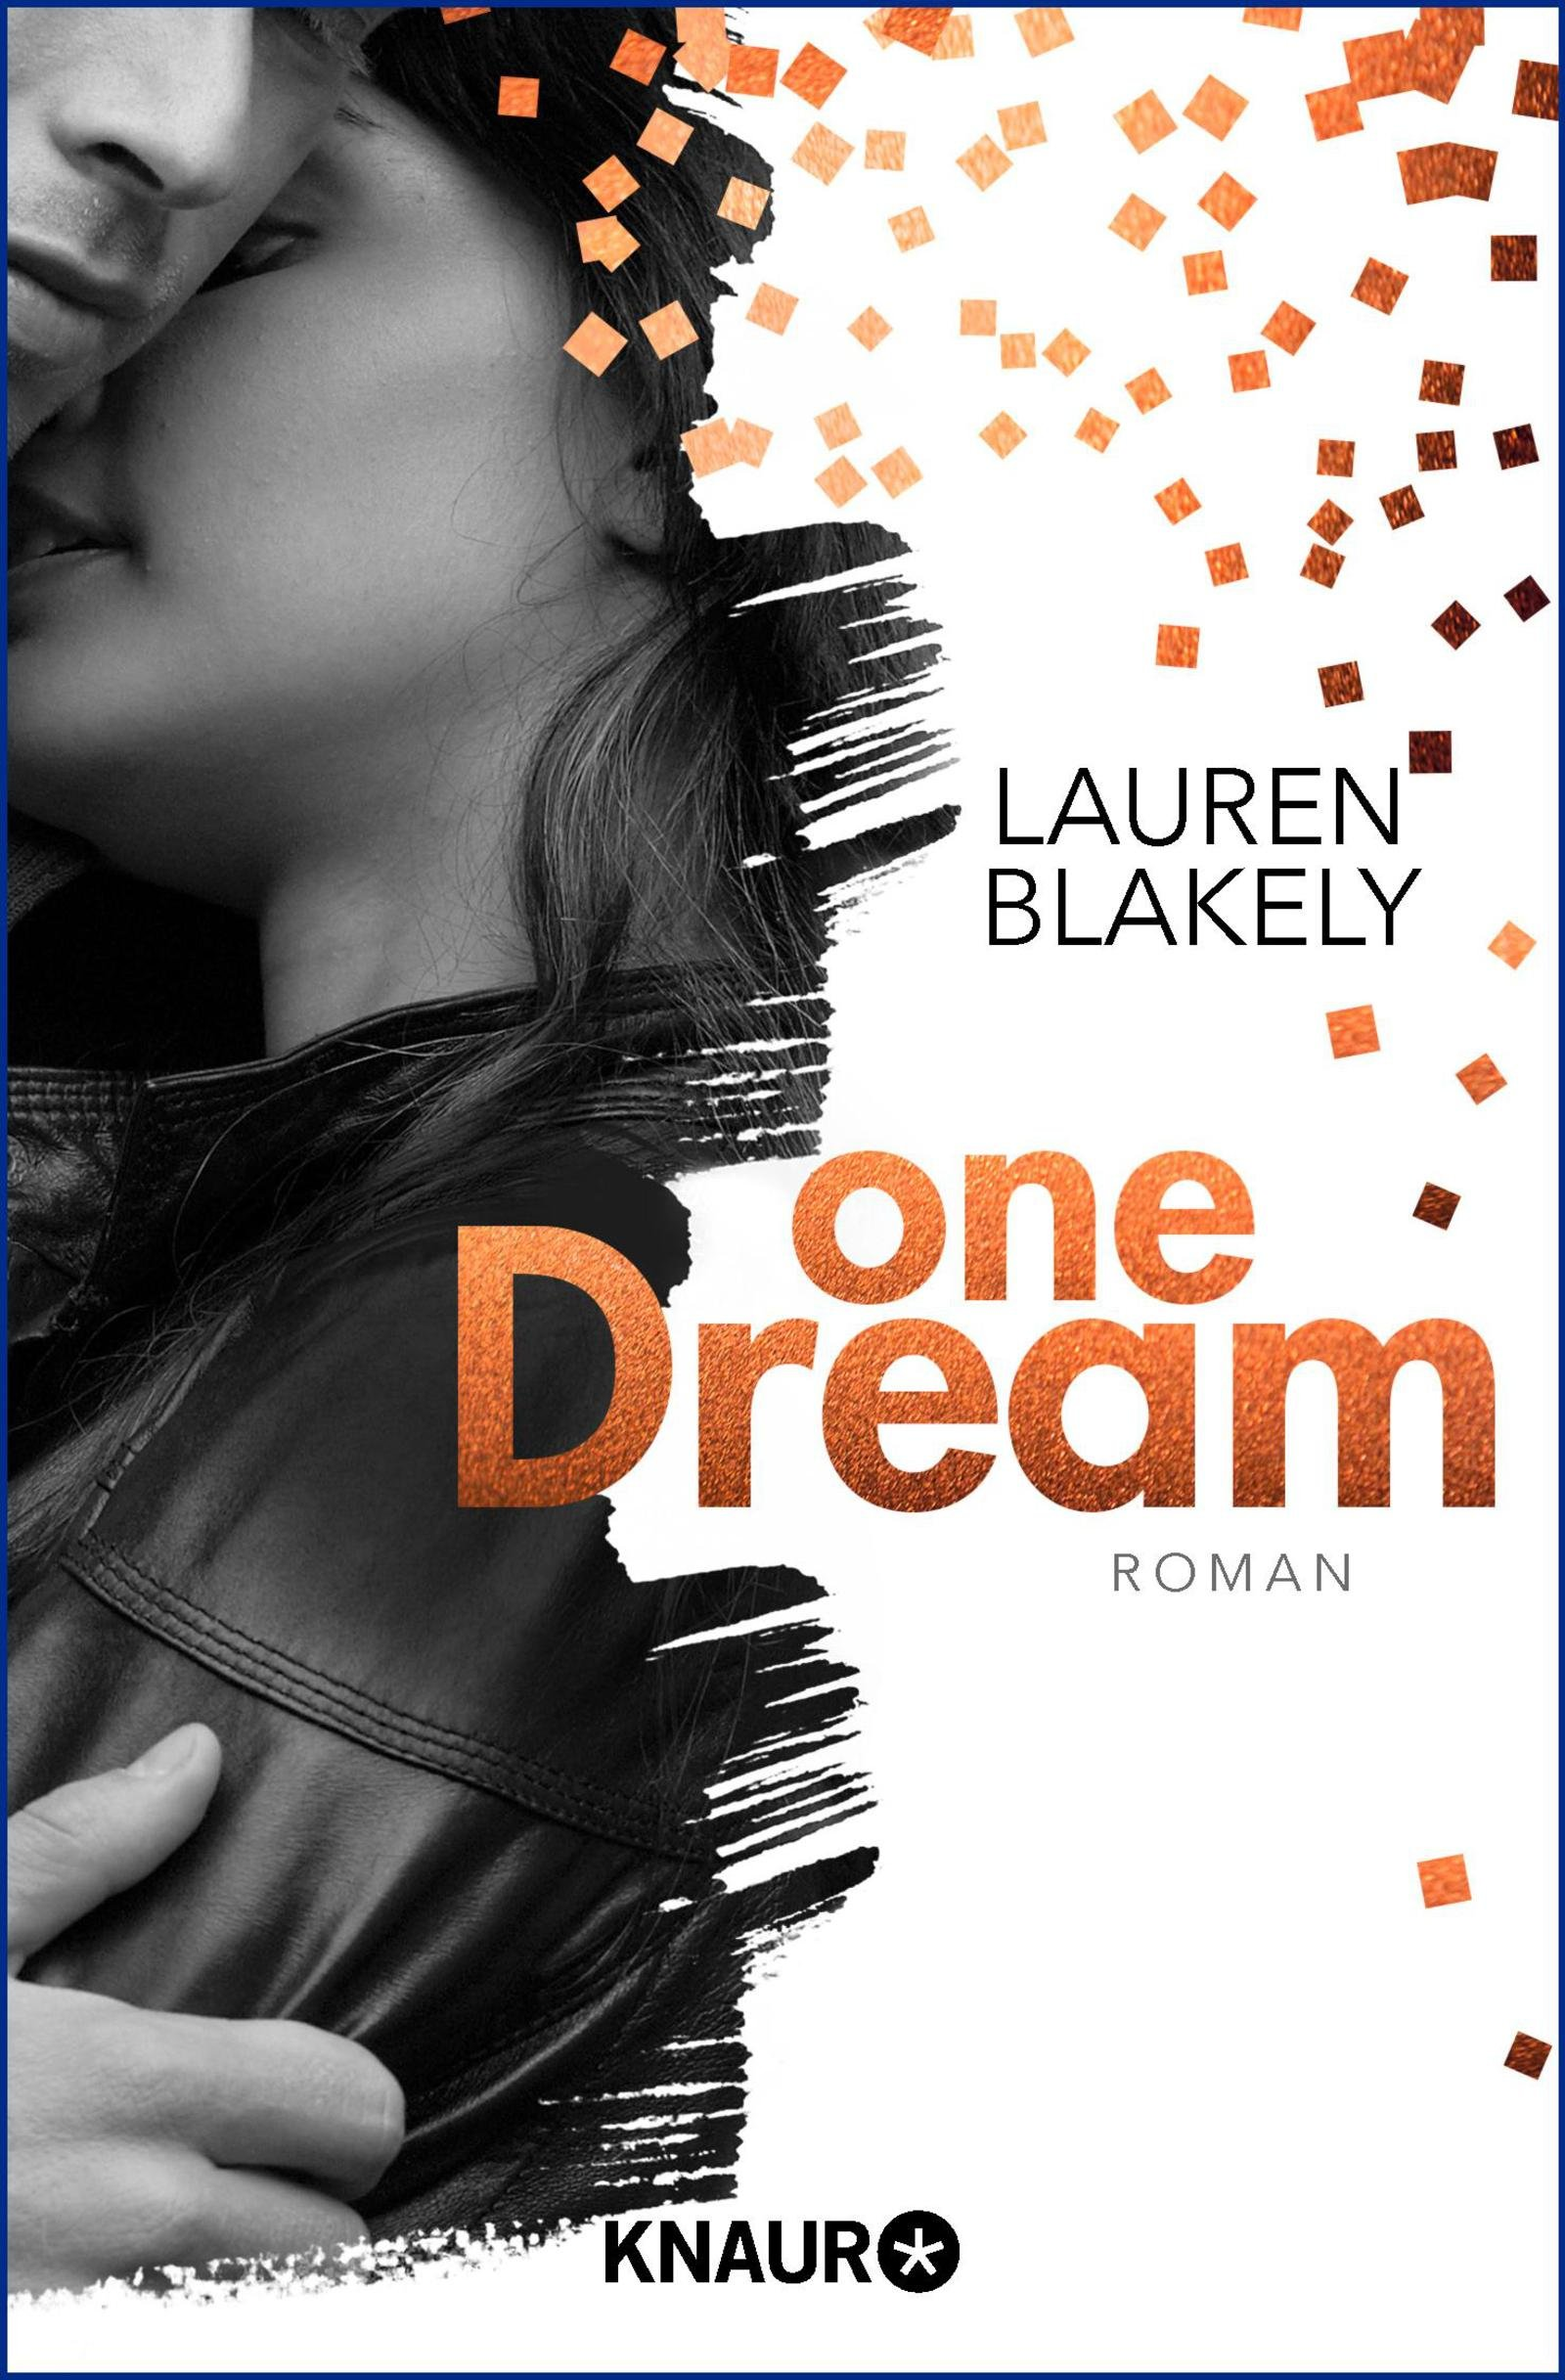 Bildergebnis für lauren blakely one dream